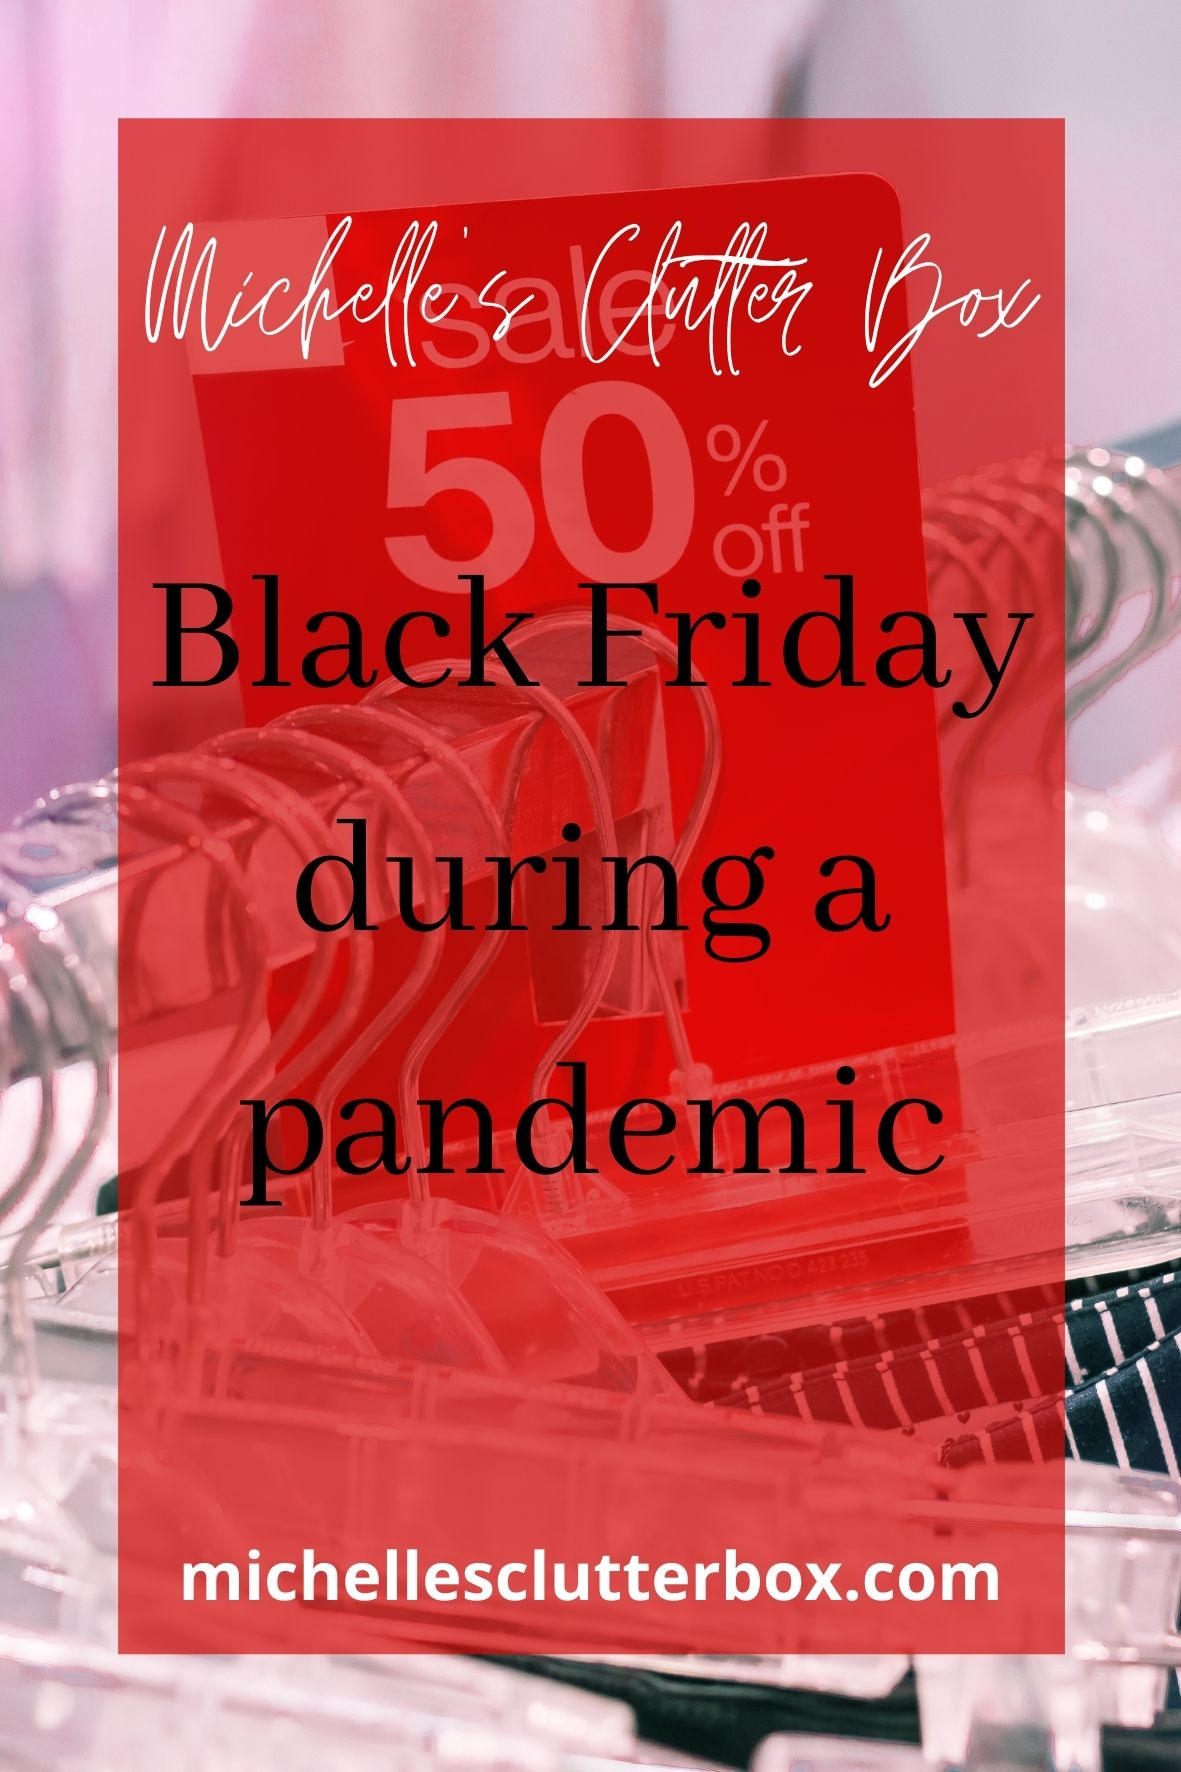 Black Friday during a pandemic